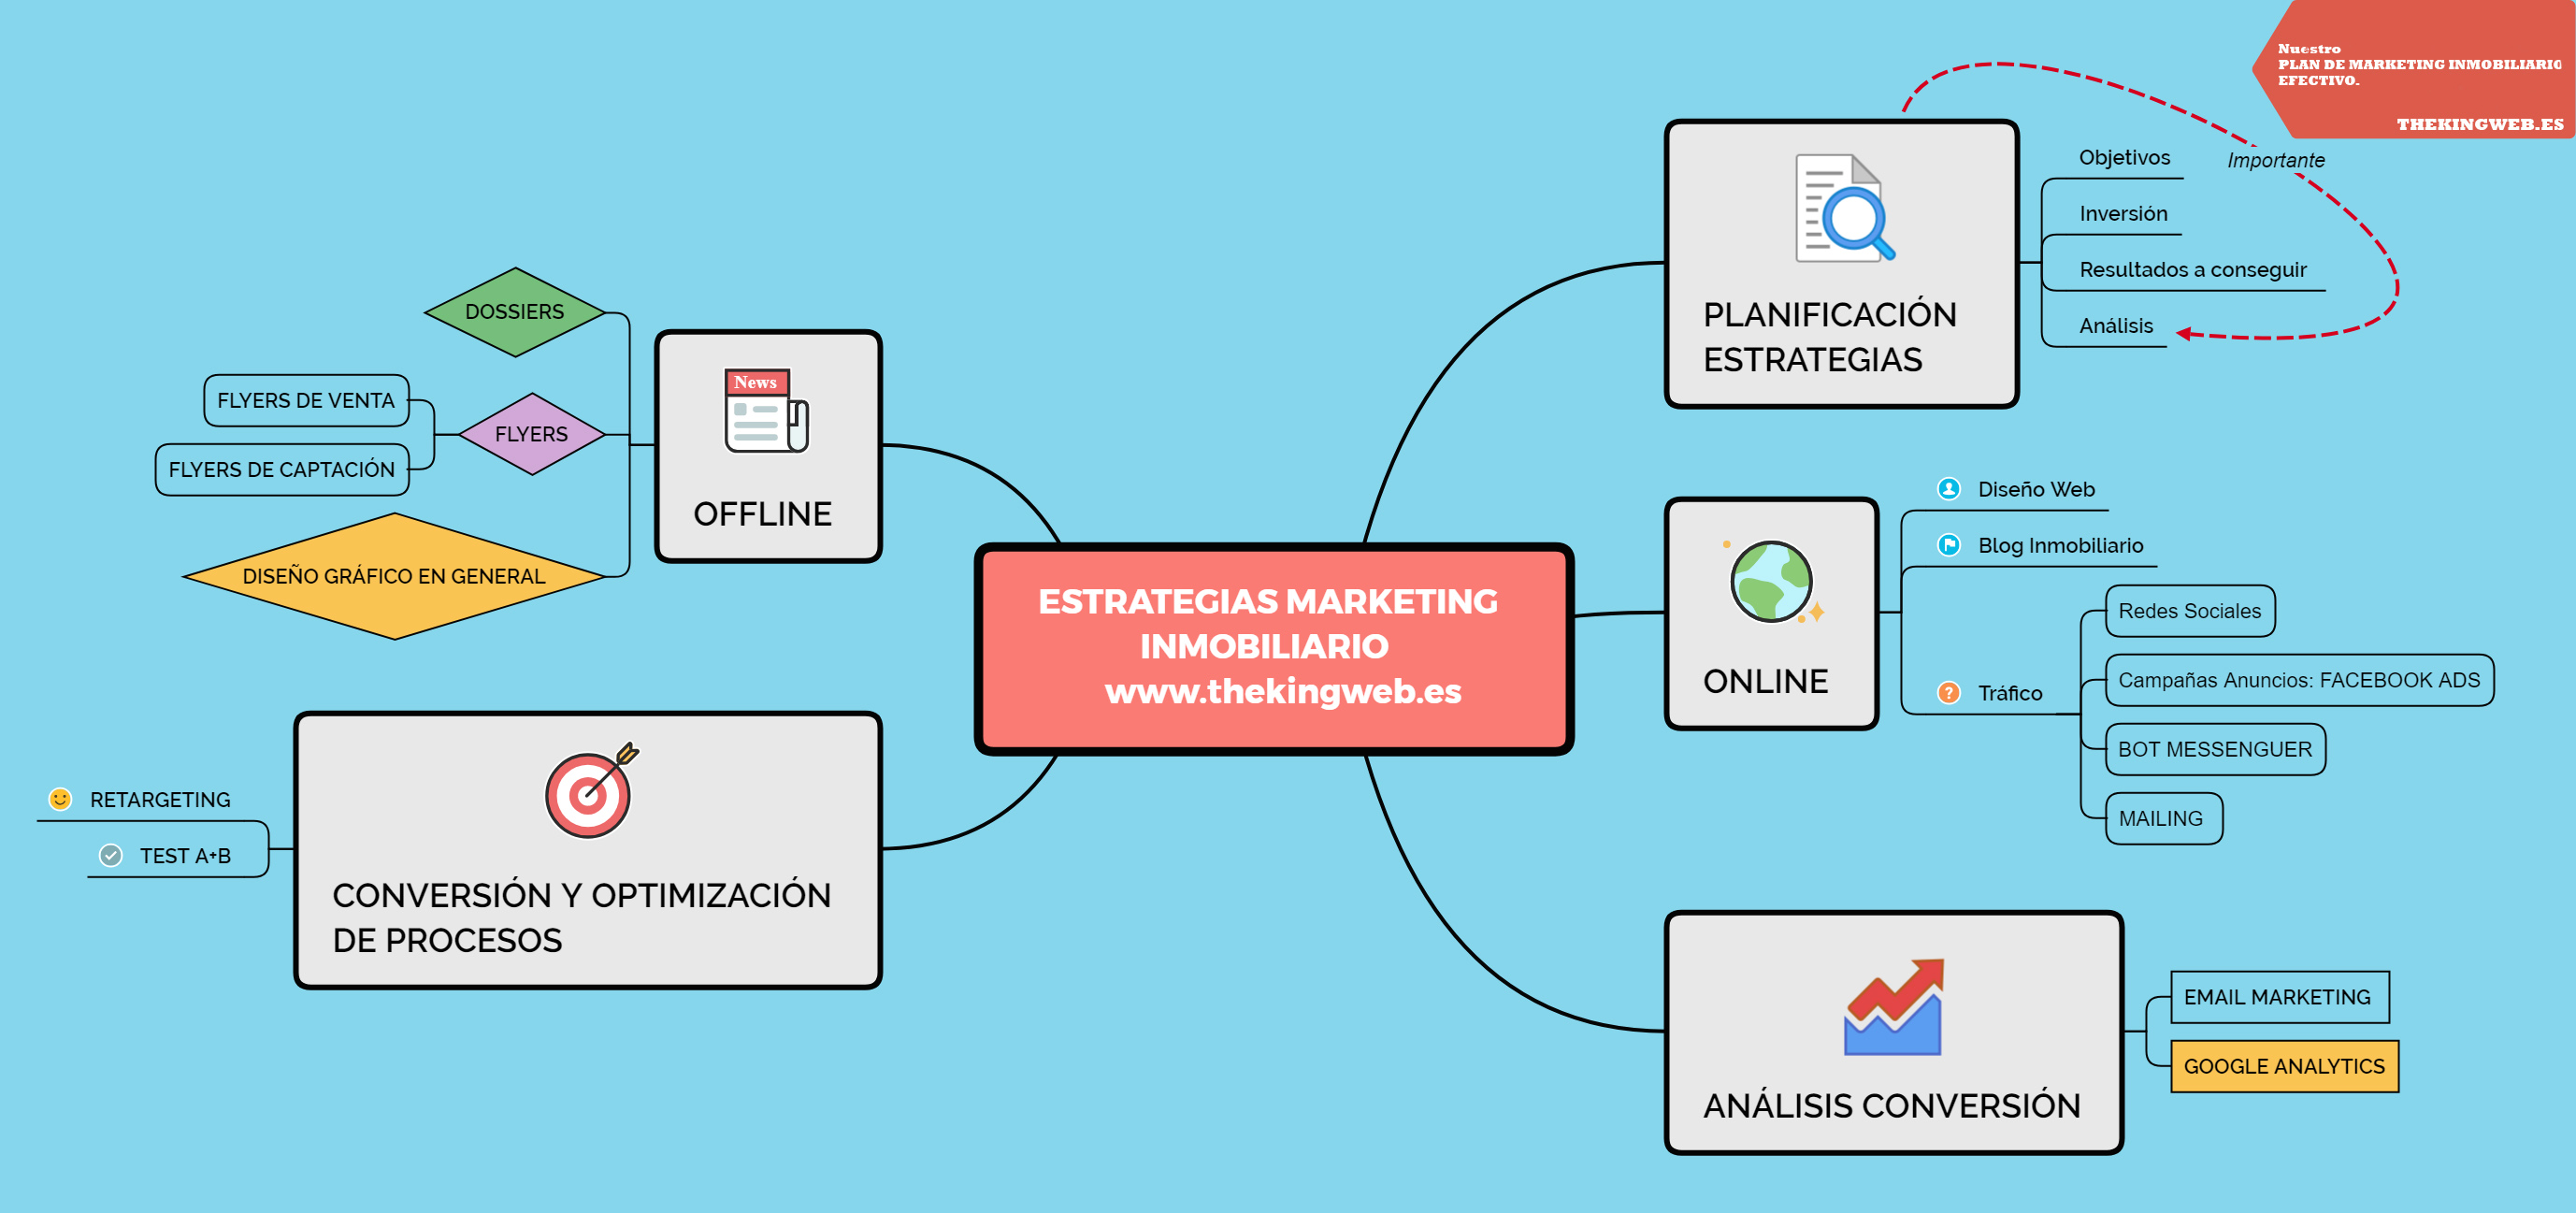 Estrategias Marketing Inmobiliario